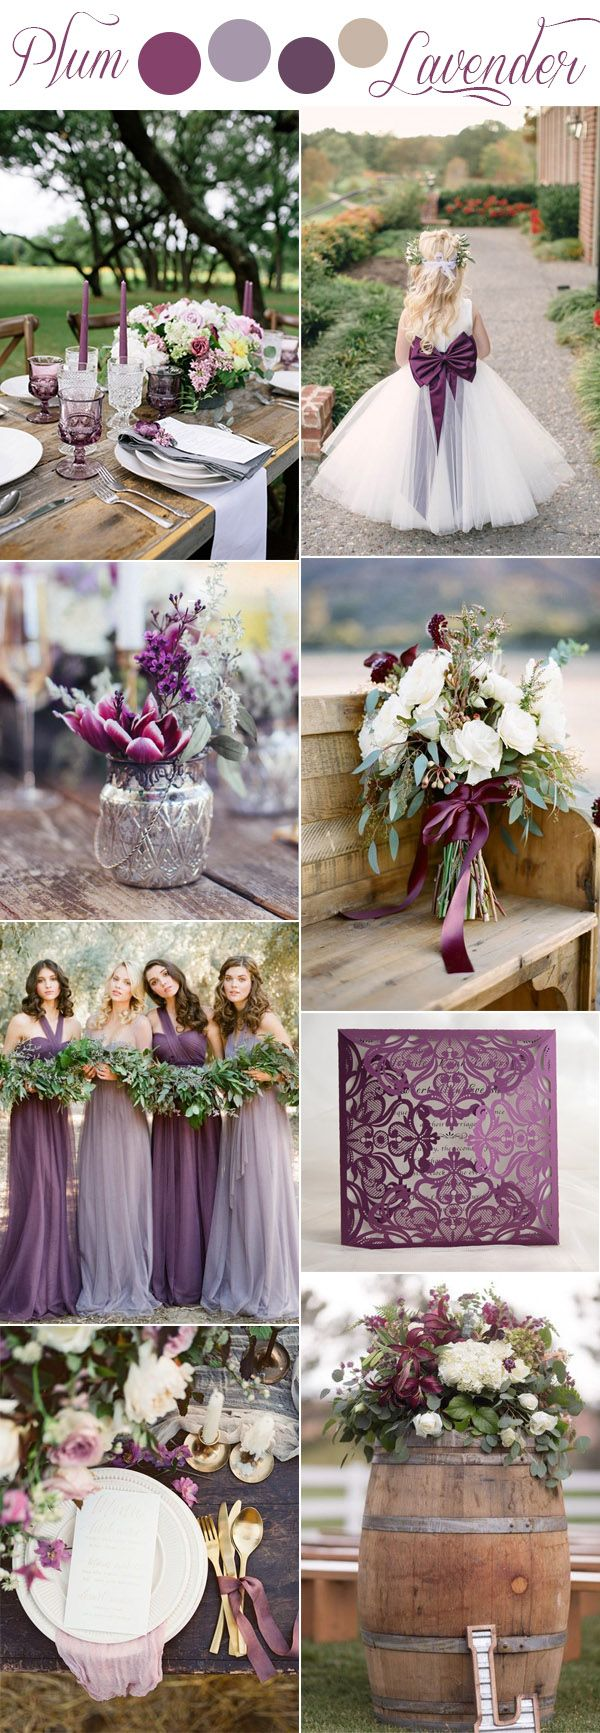 7 gorgeous rustic romantic and elegant wedding ideas color 7 gorgeous rustic romantic and elegant wedding ideas color palettes junglespirit Gallery